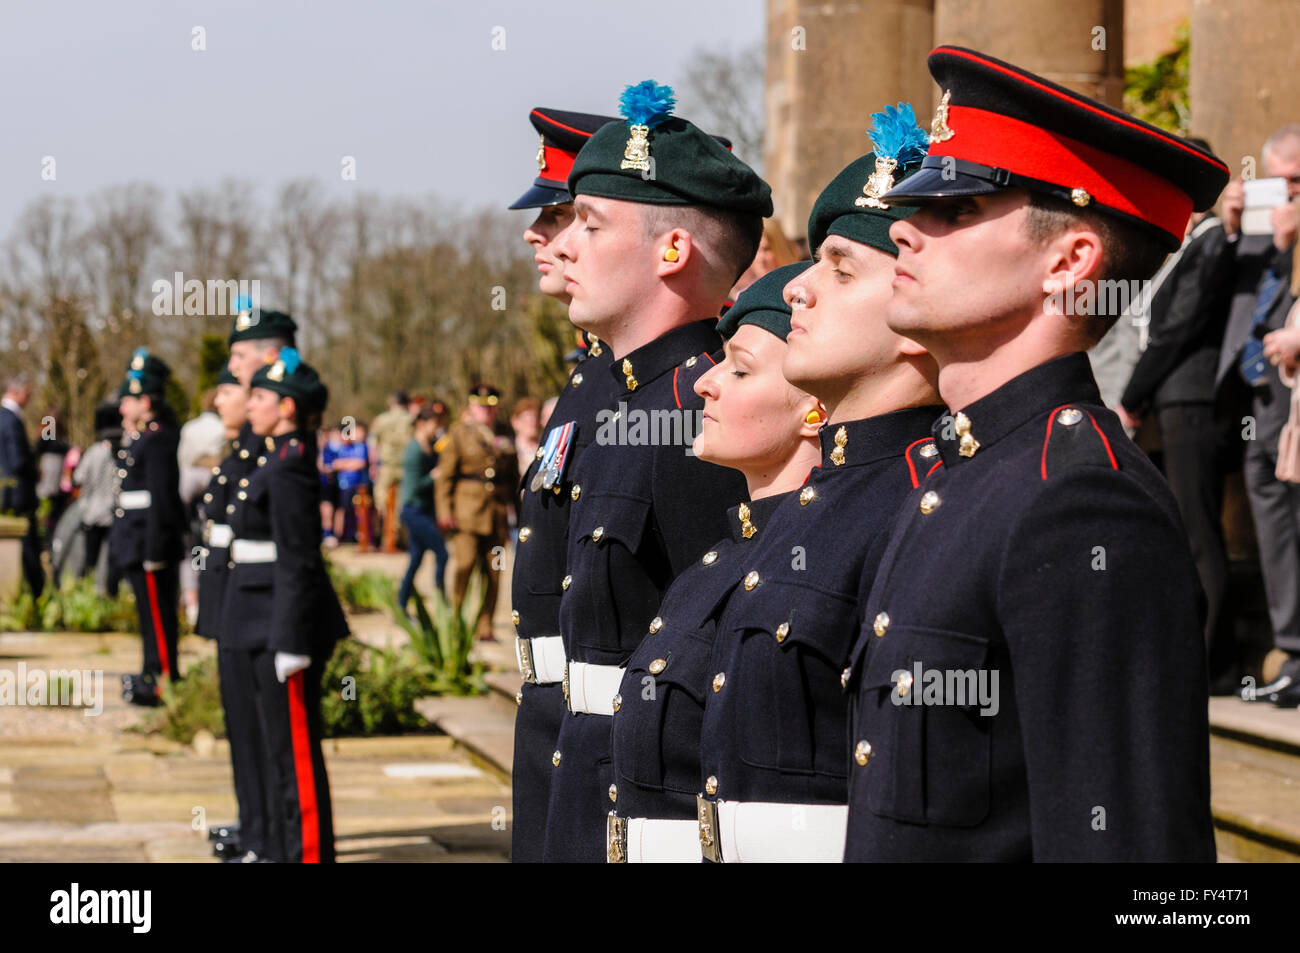 Soldiers from the 'Ulster's Gunners' in ceremonial uniform. - Stock Image